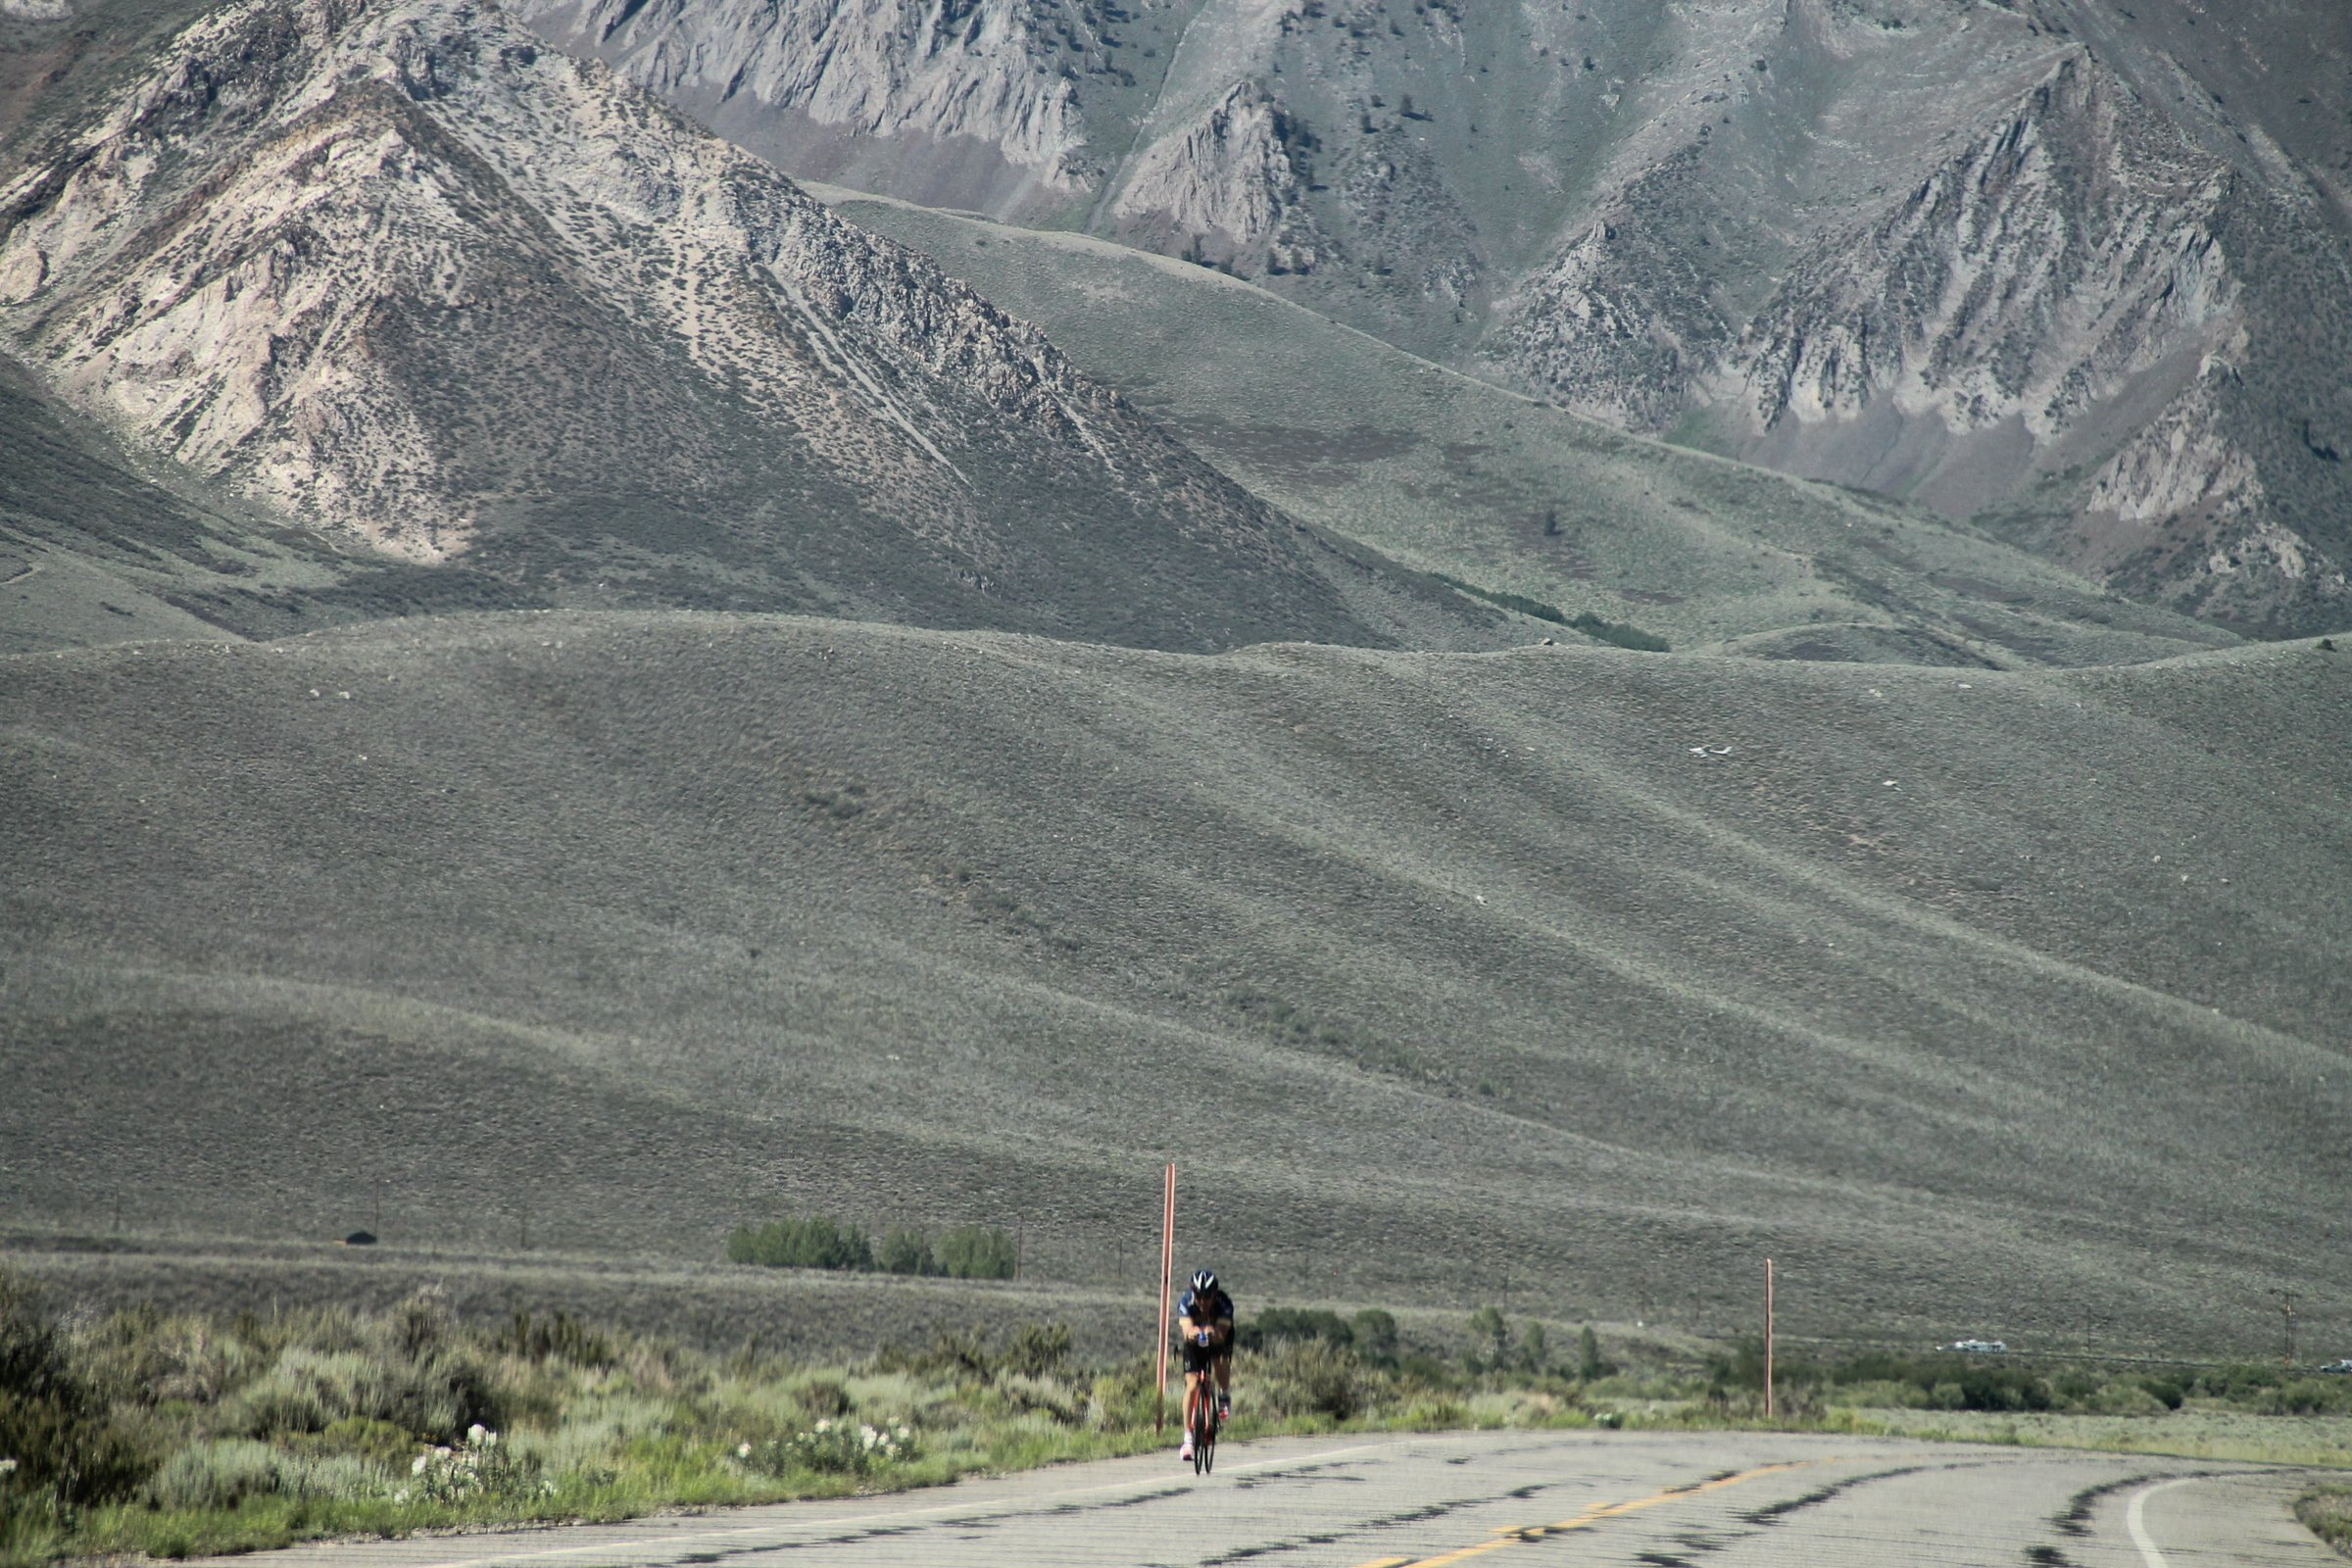 Bicyclist on Road with Mountain Behind